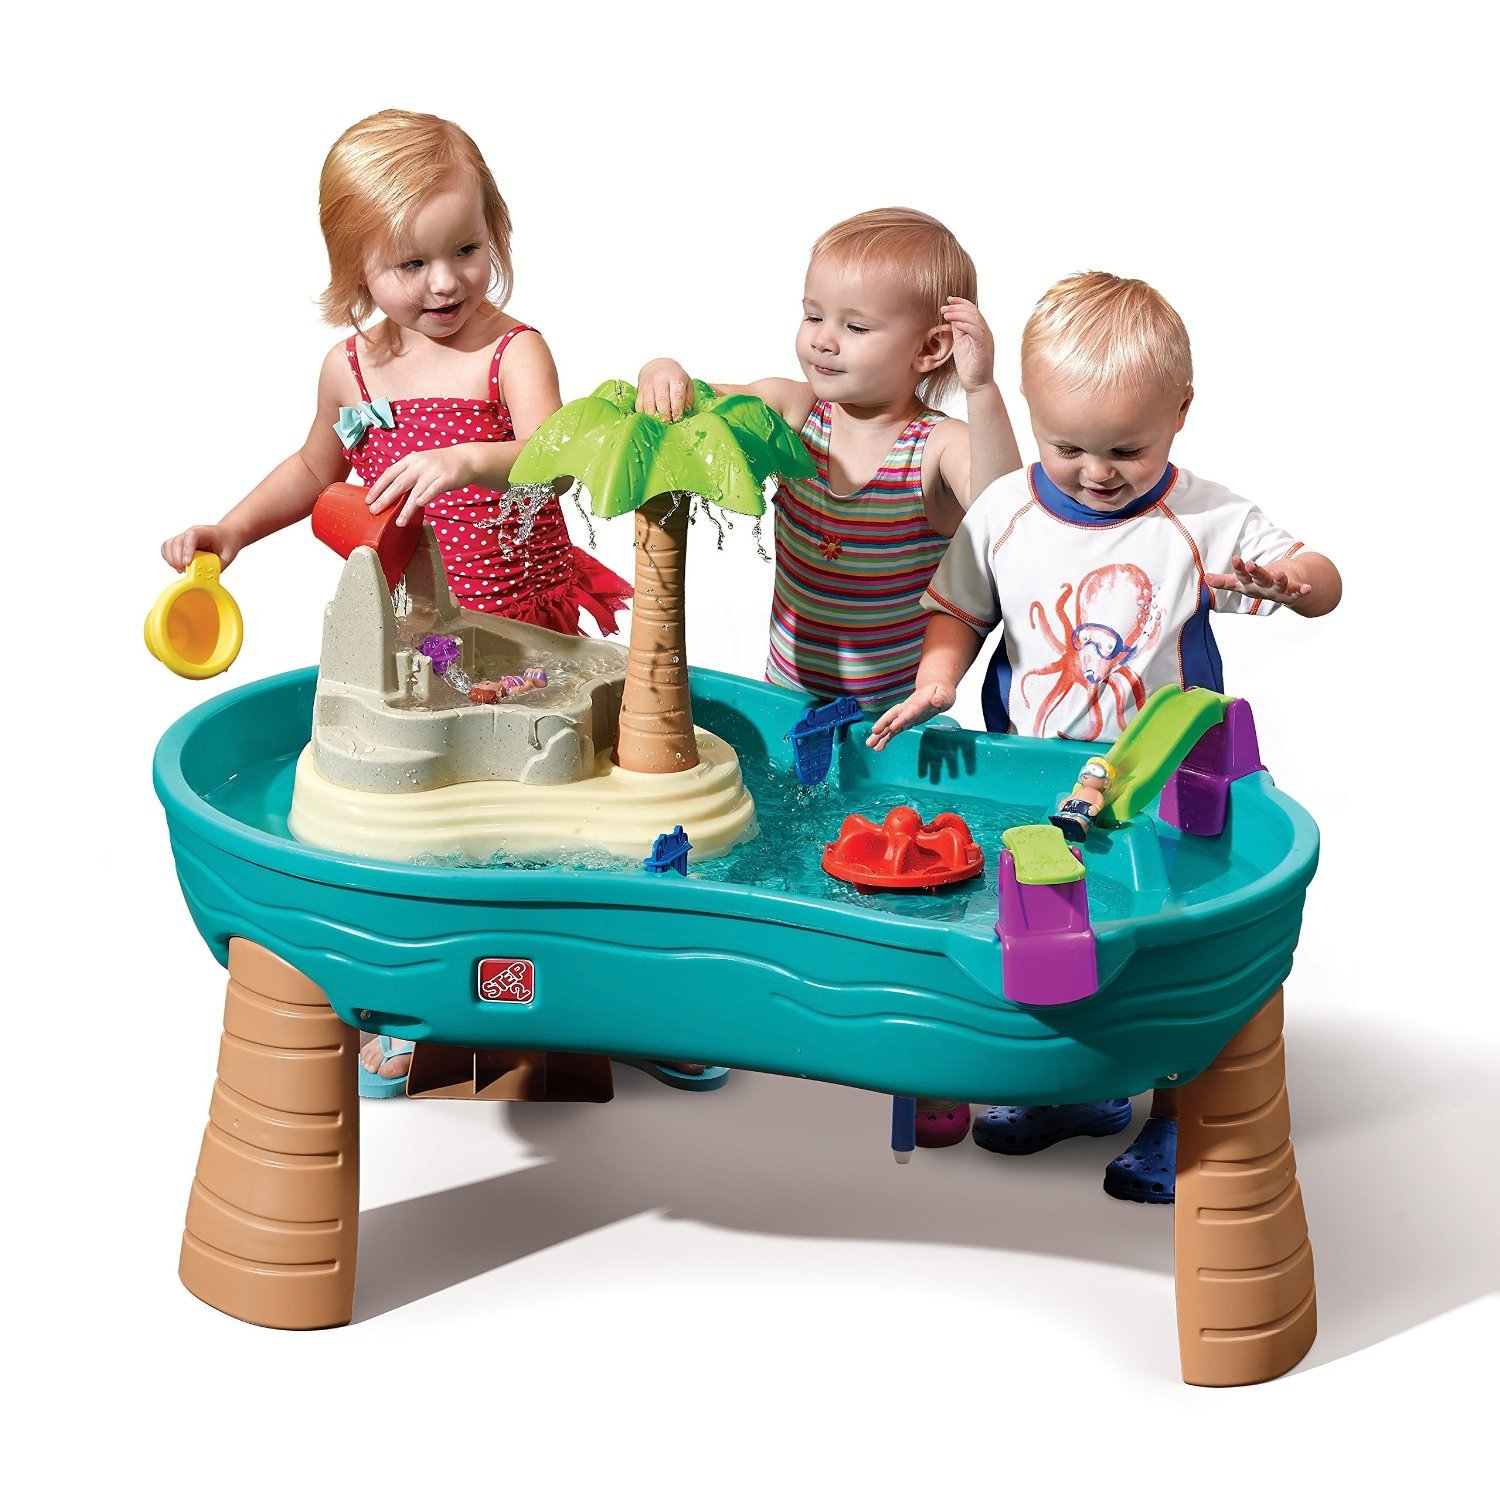 Step2 Splish Splash Seas Water Table (Deluxe Pack - Includes Palm Tree & Accessories)